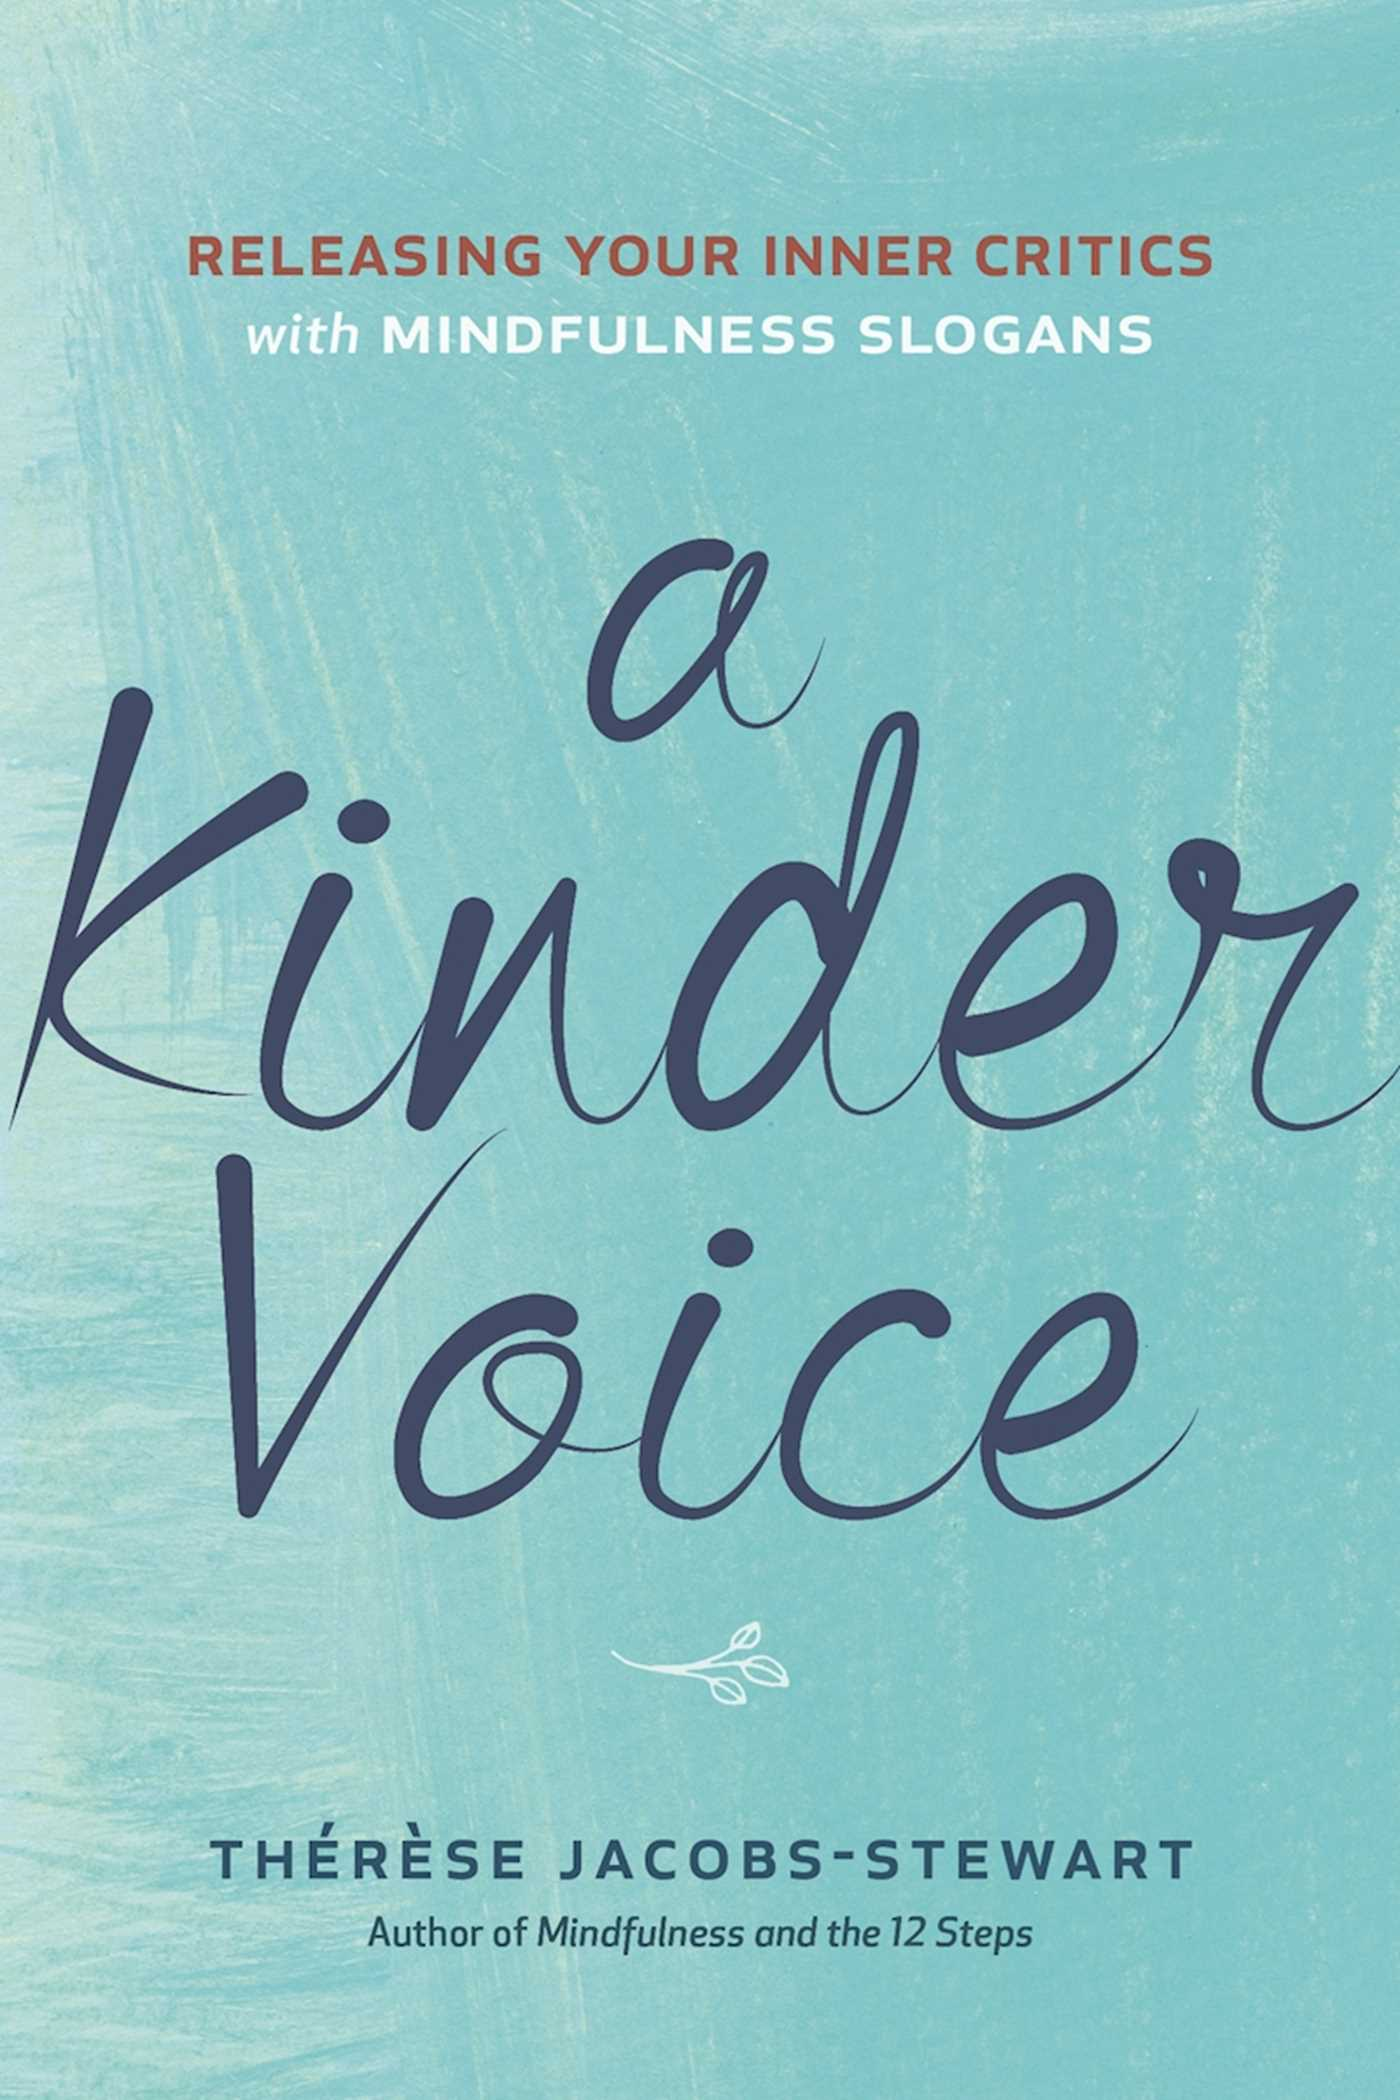 A kinder voice 9781616496395 hr